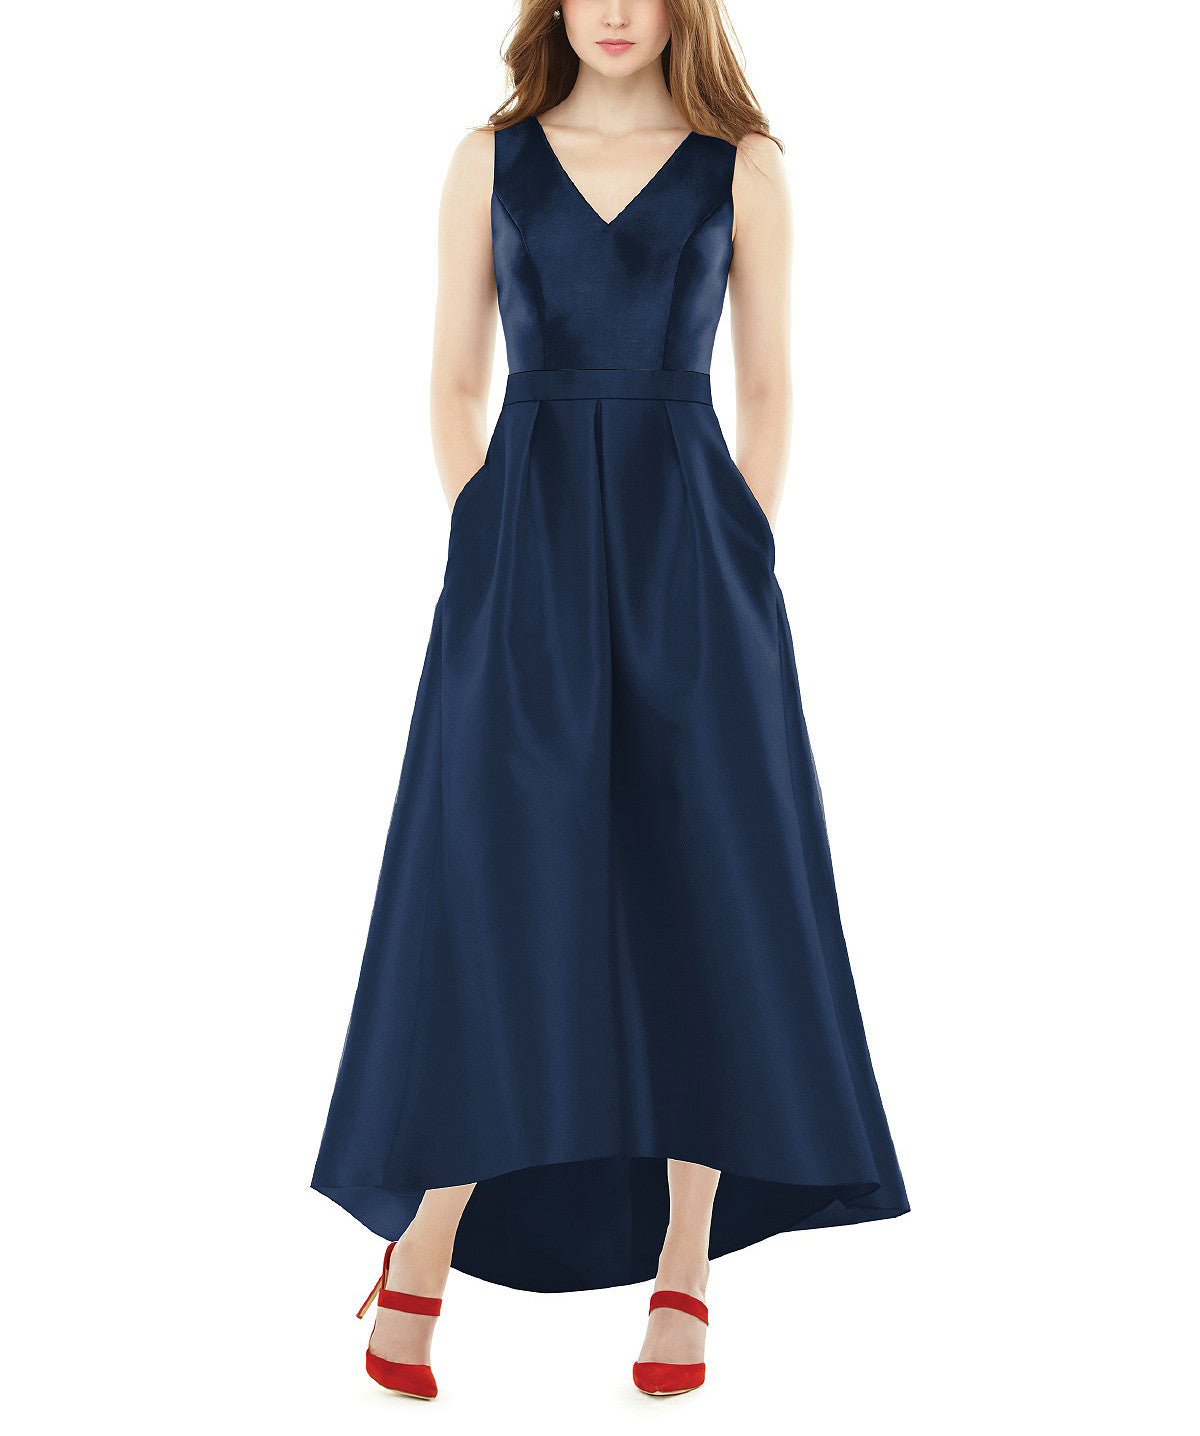 Alfred Sung Style D723 Bridesmaid Dress   Brideside